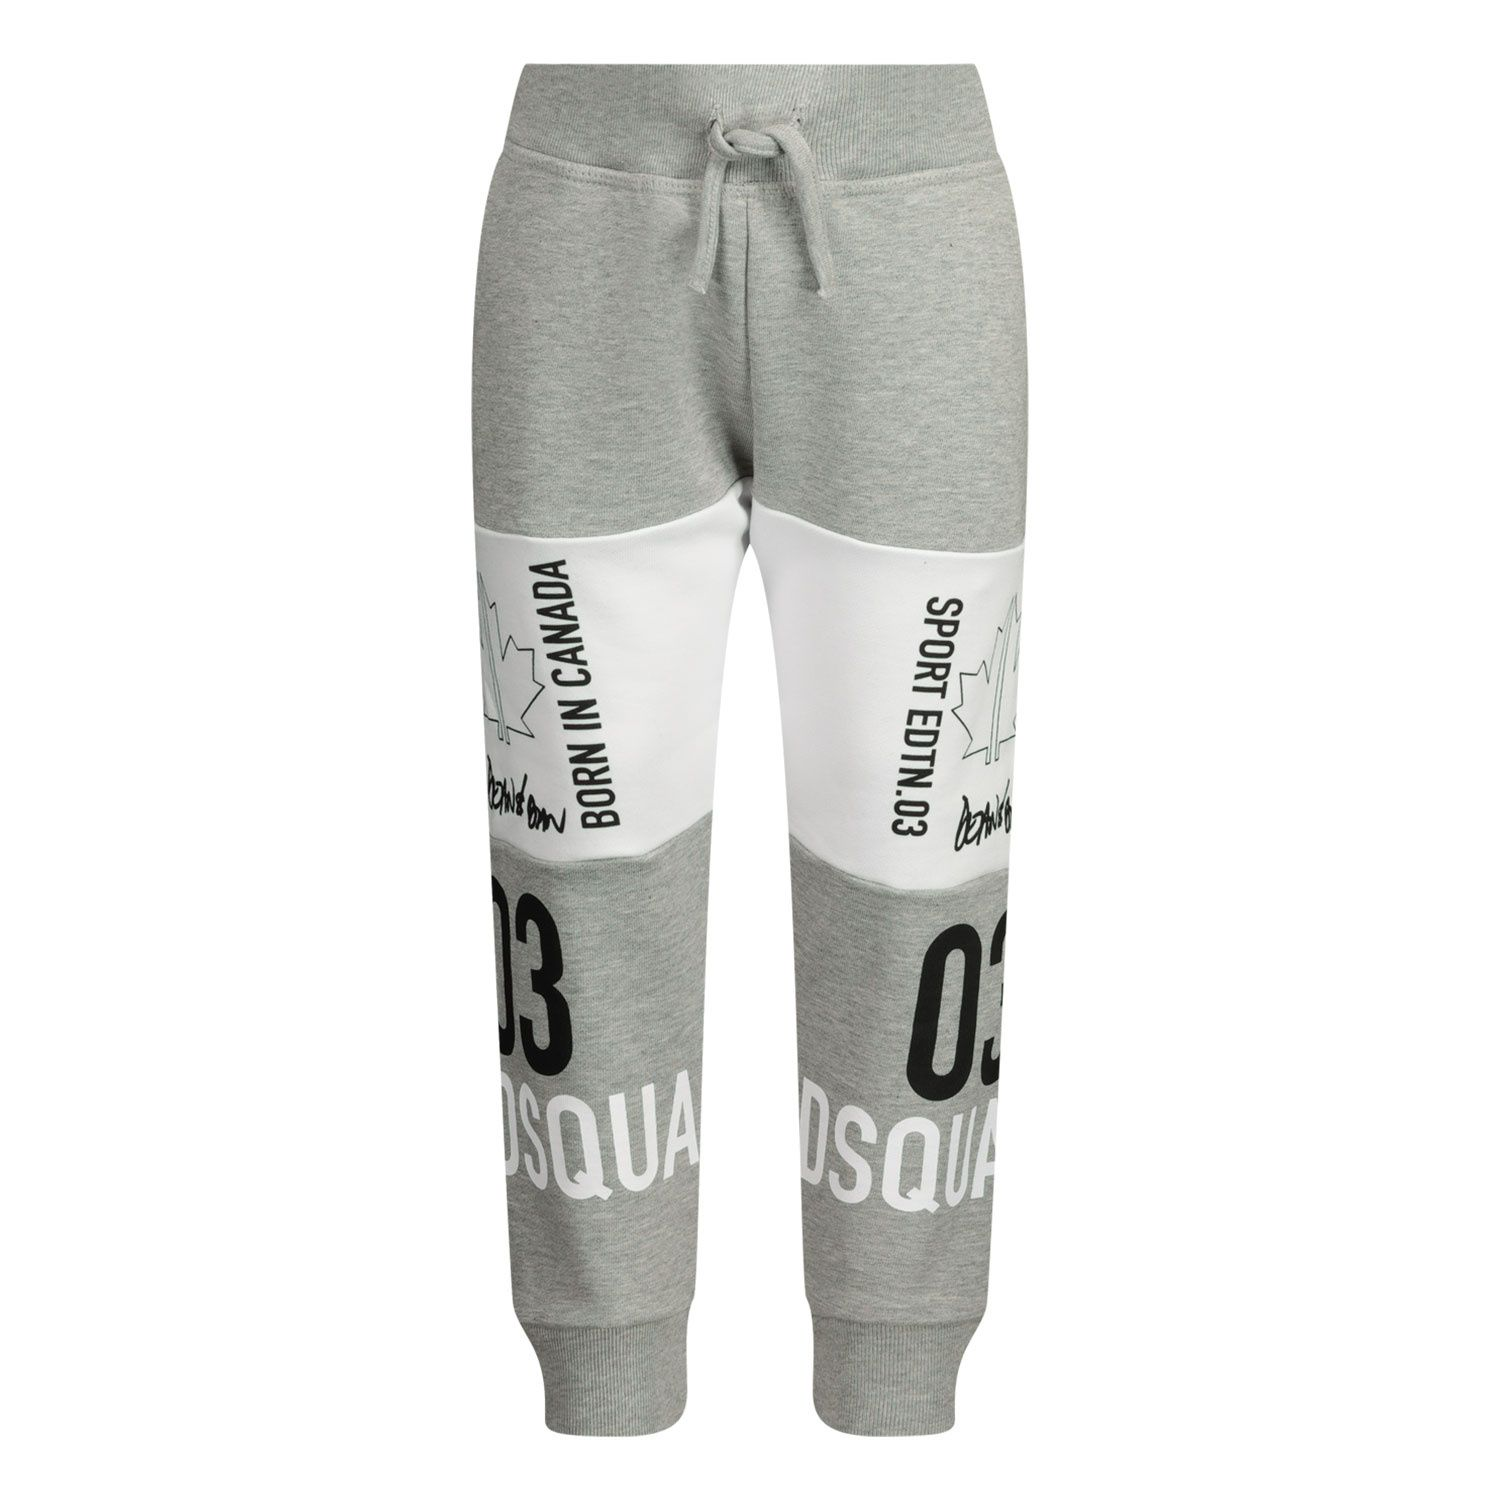 Picture of Dsquared2 DQ0009 baby pants grey